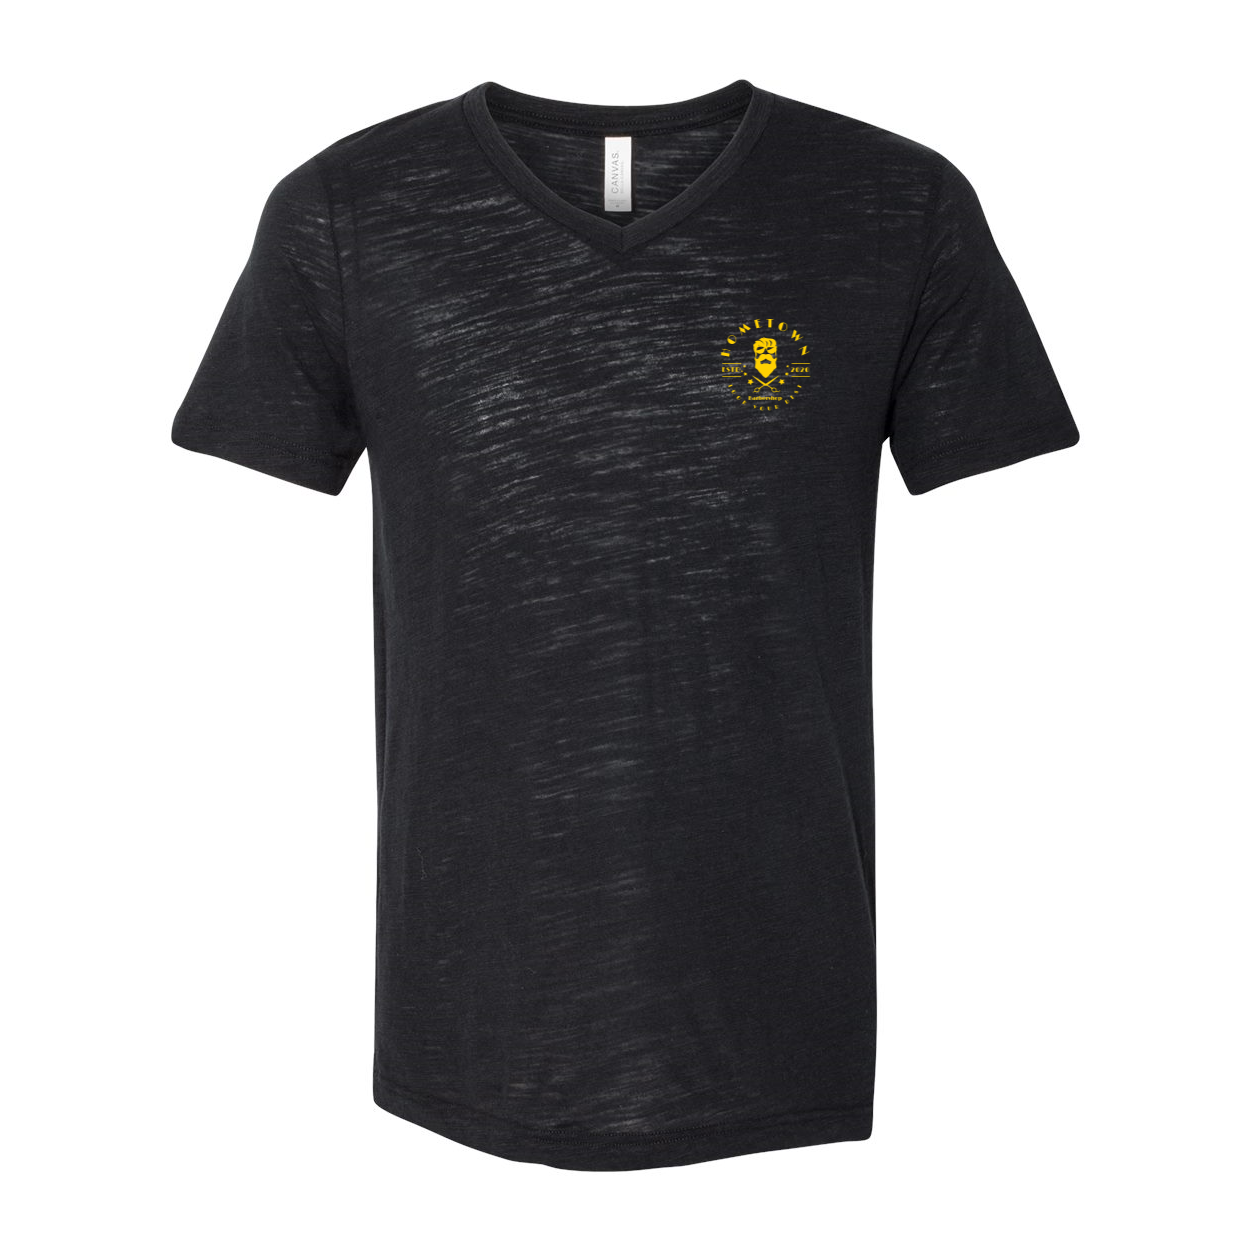 Barbershop Black V-Neck Jersey Tee